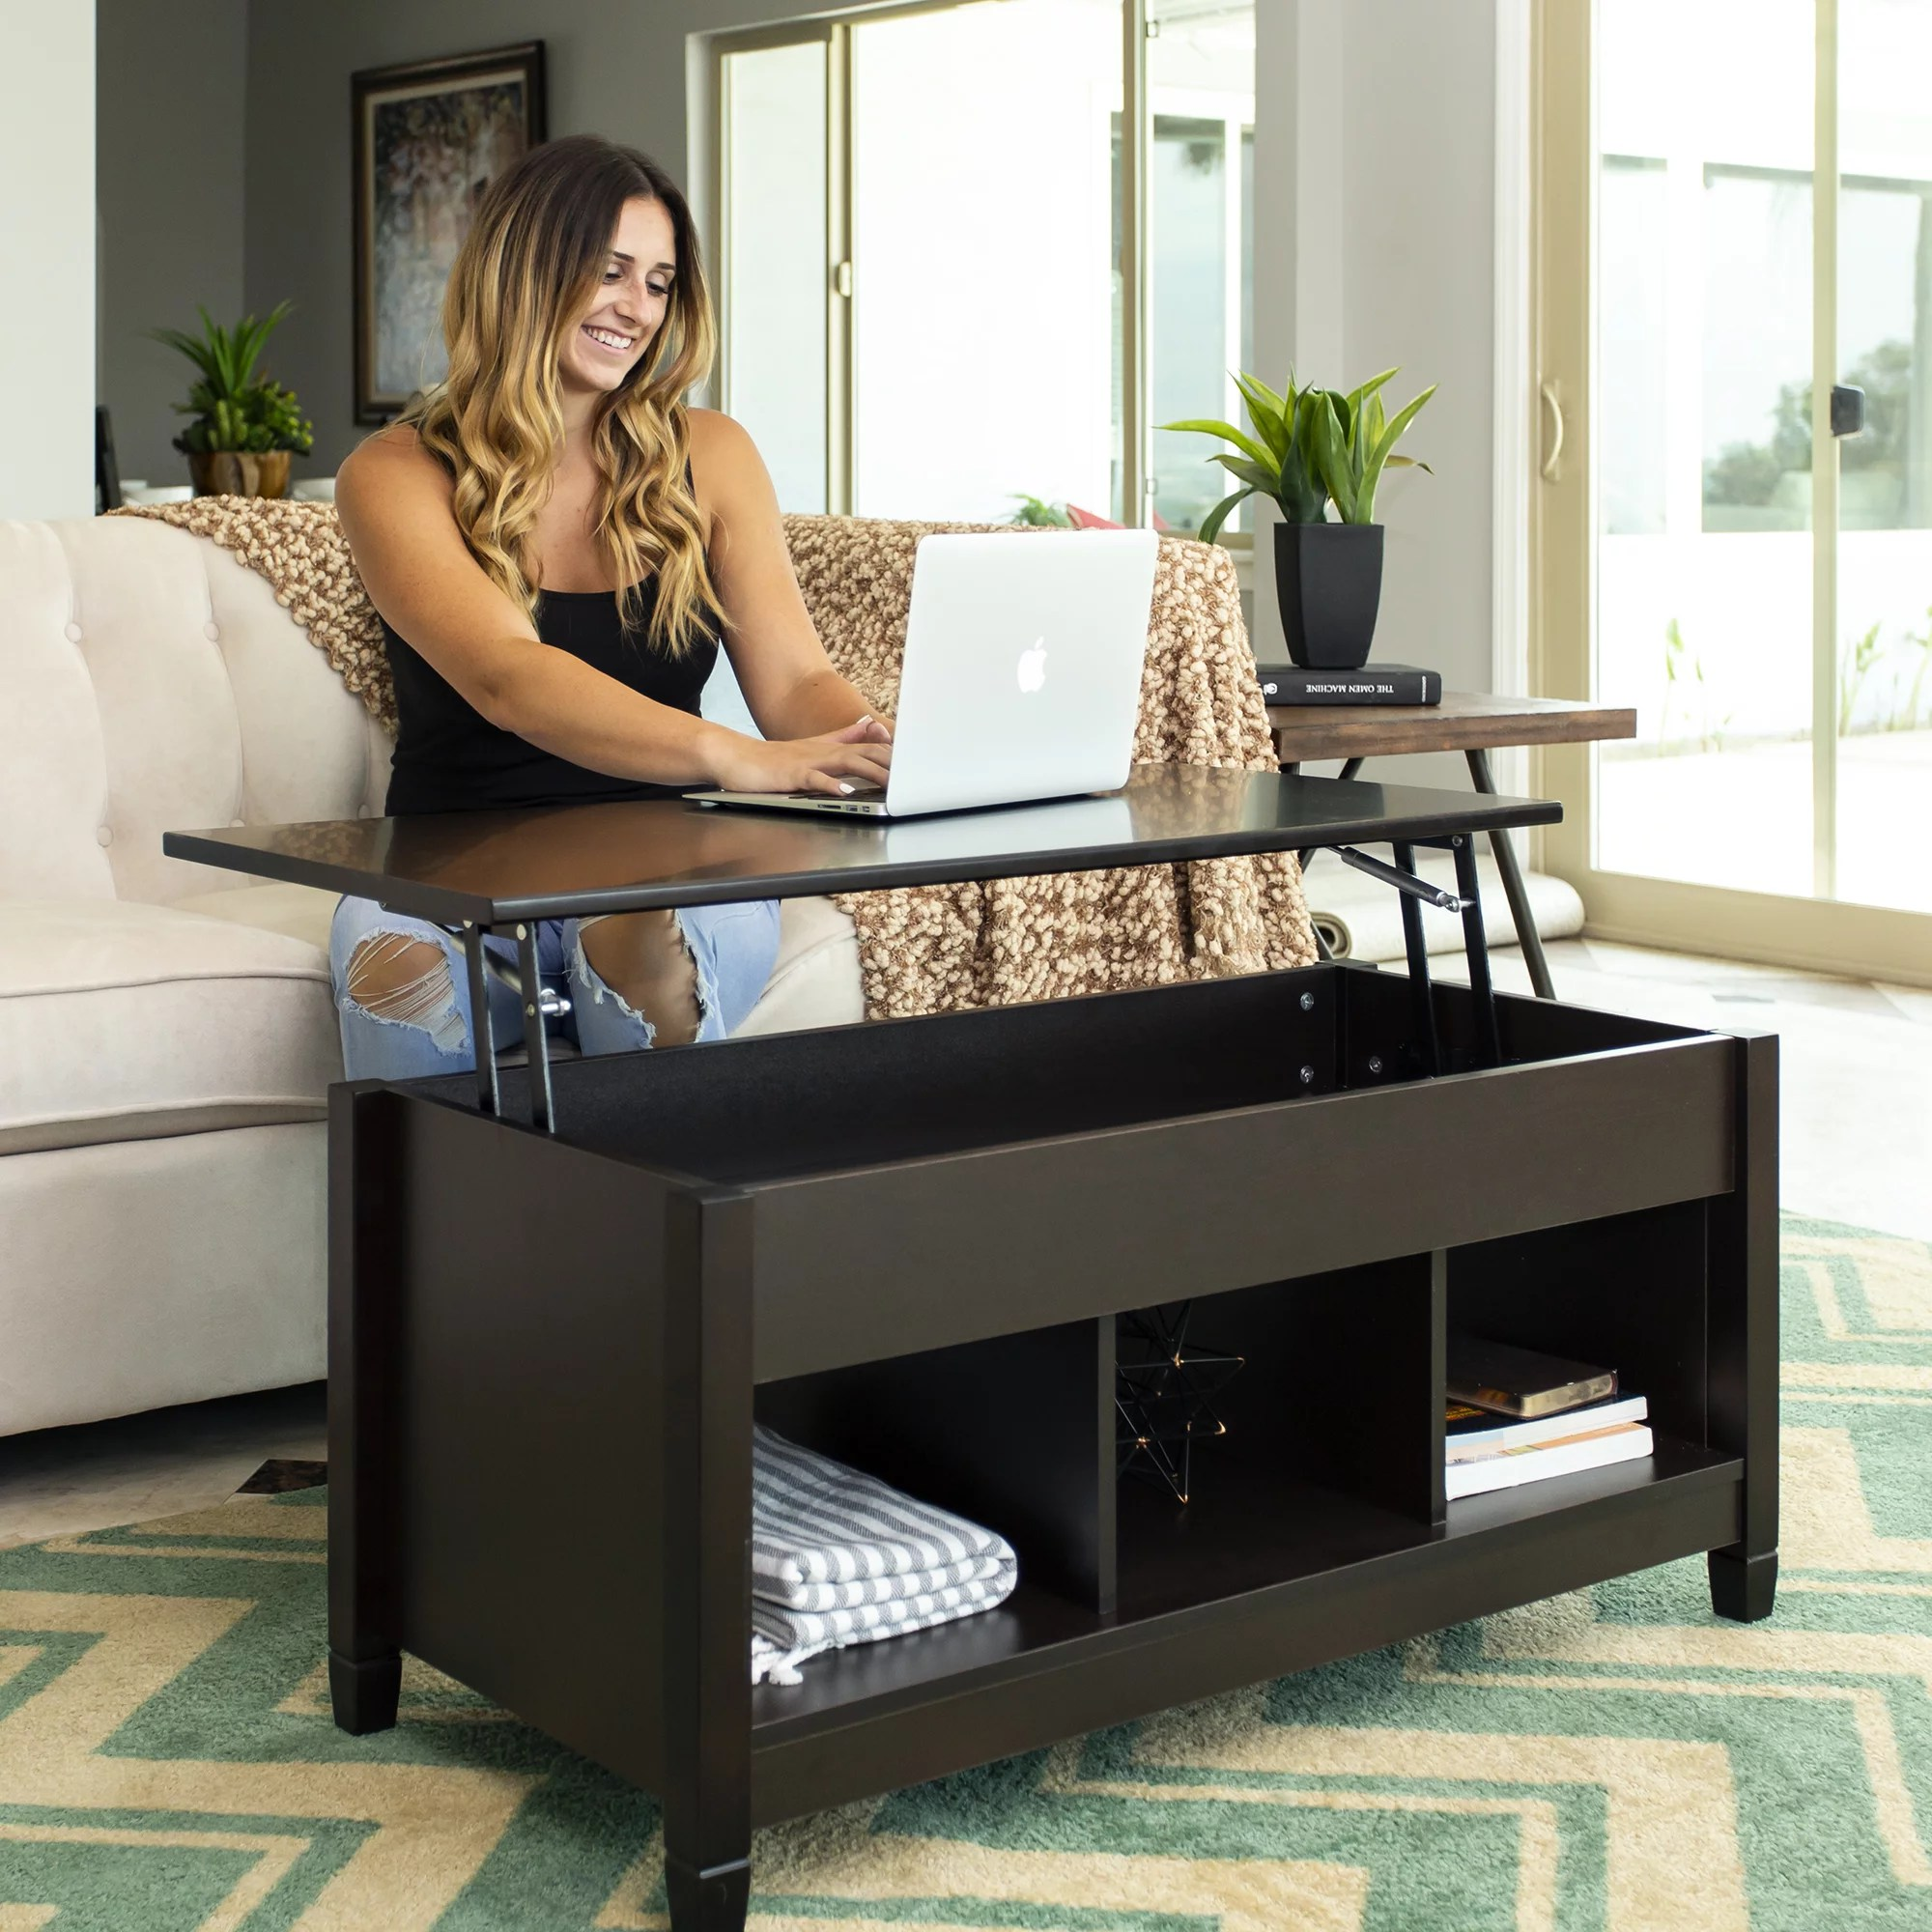 best choice products modern home coffee table furniture w hidden storage and lift tabletop espresso walmart com